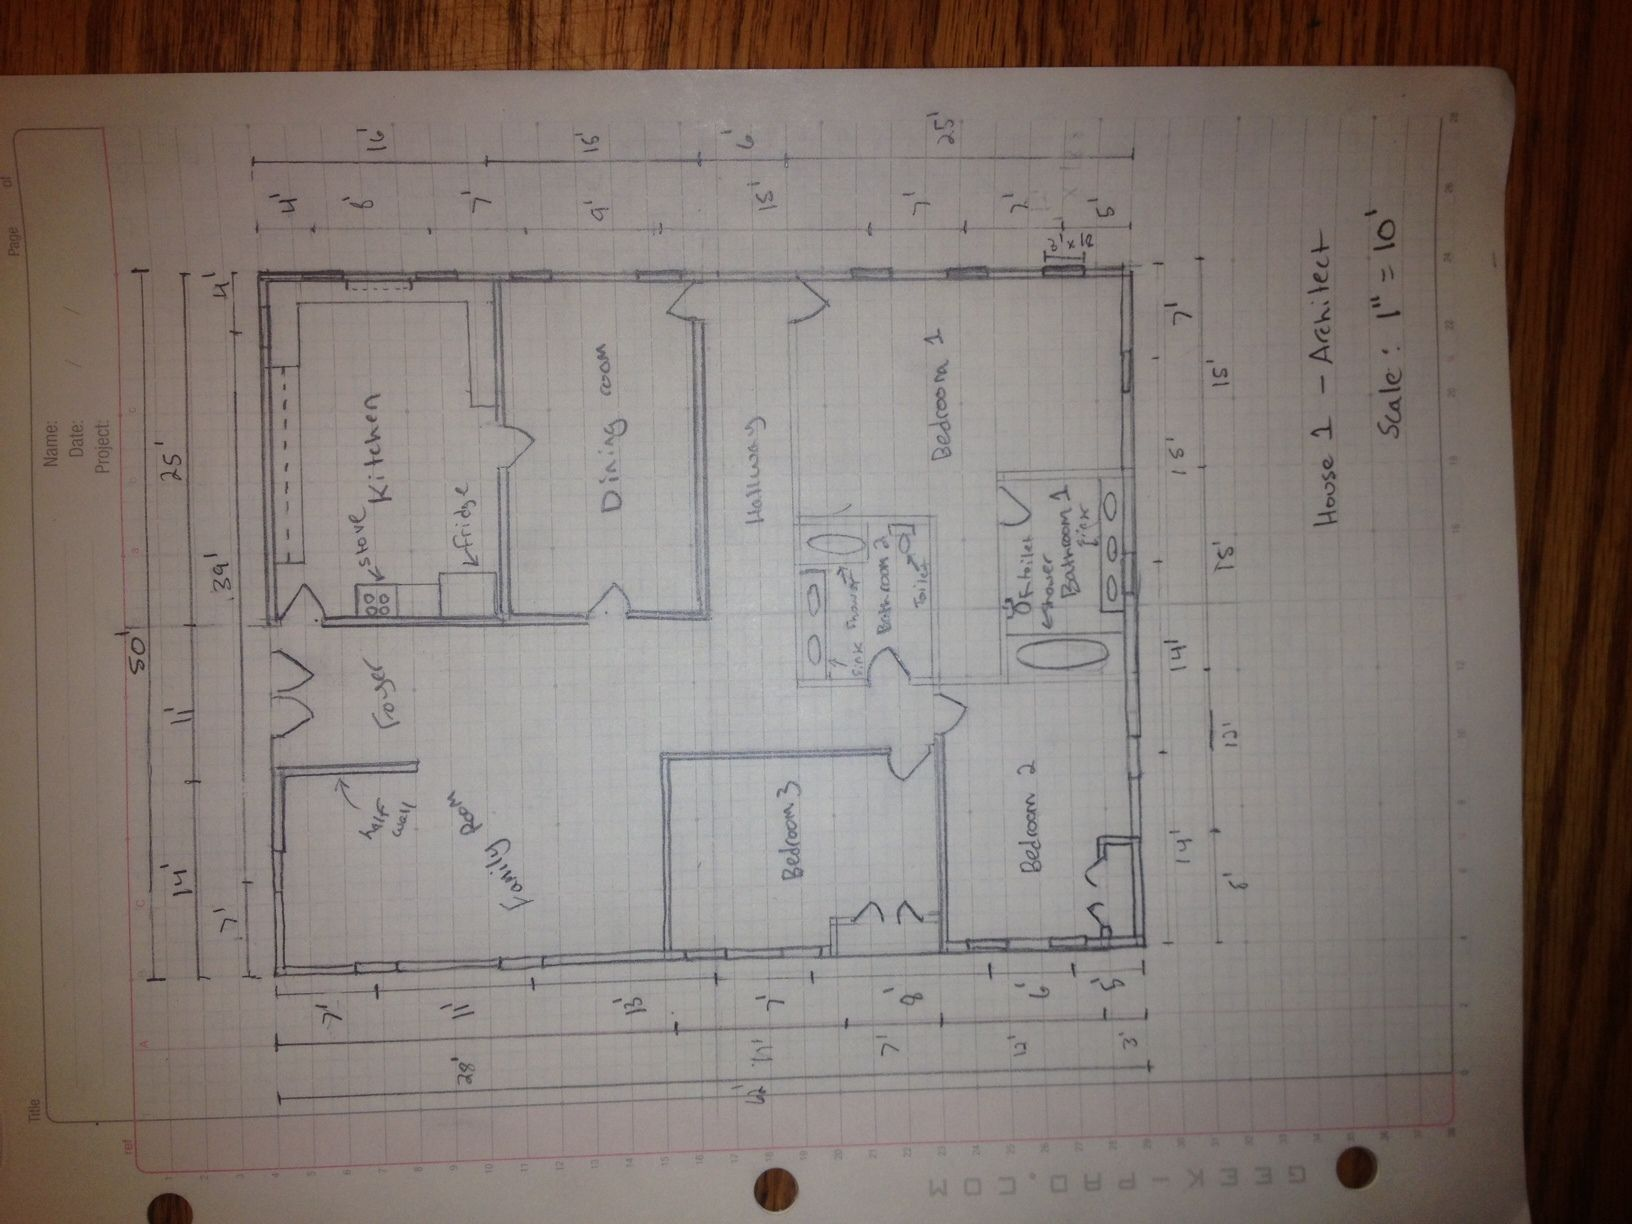 How To Manually Draft A Basic Floor Plan Simple Floor Plans Floor Plan Sketch Floor Plans